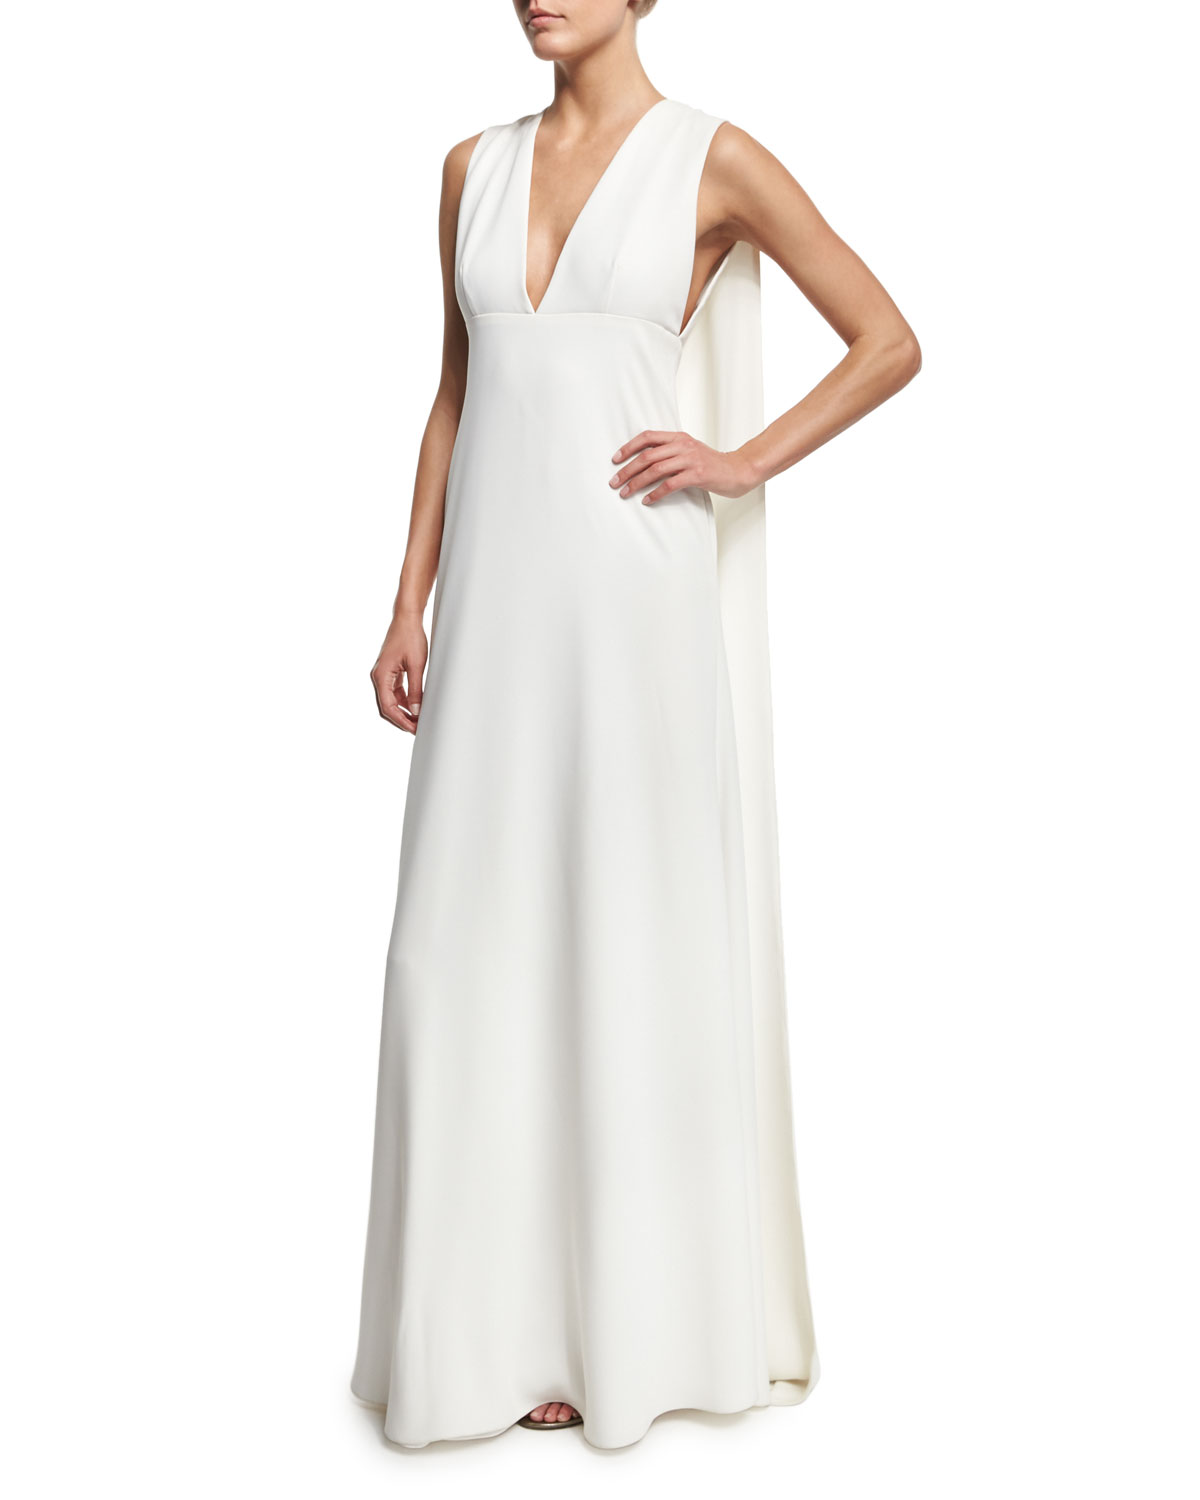 9c498522d3 Jill Jill Stuart Sleeveless V-Neck Cape Gown